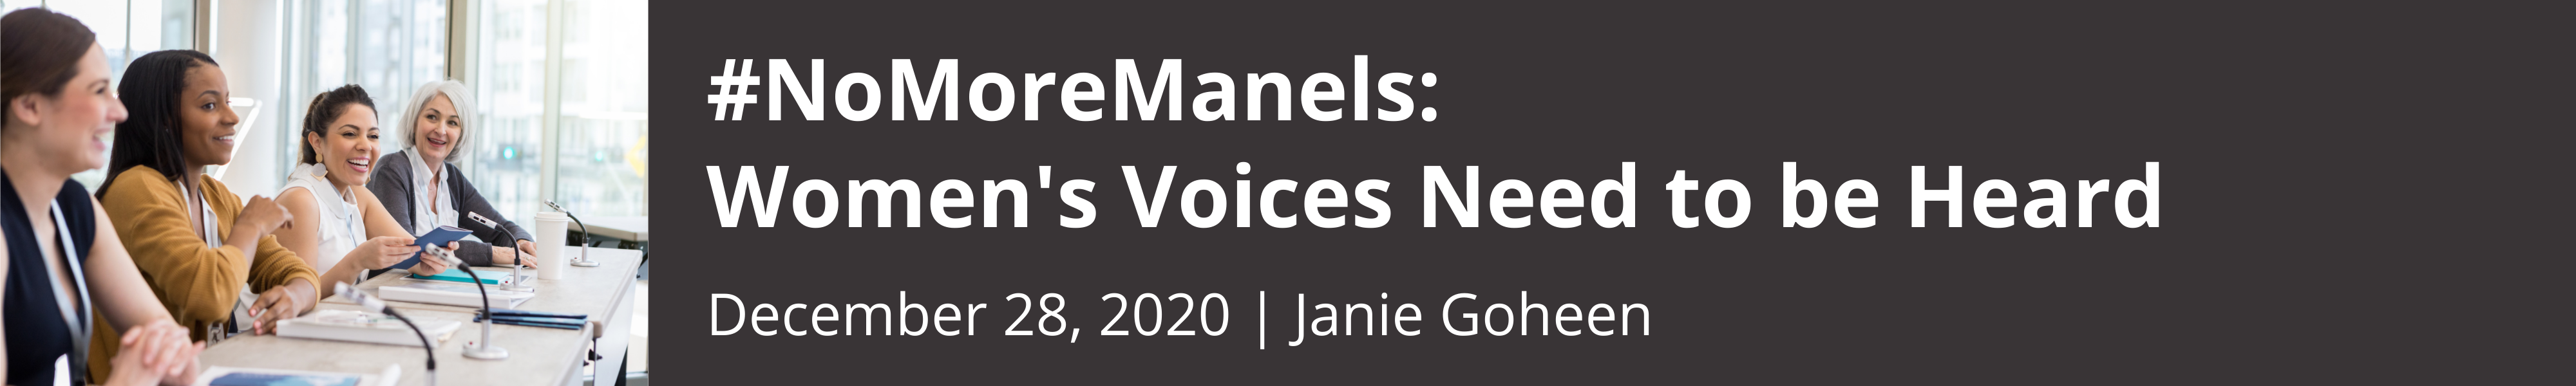 #NoMoreManels: Women's Voices Need to be Heard